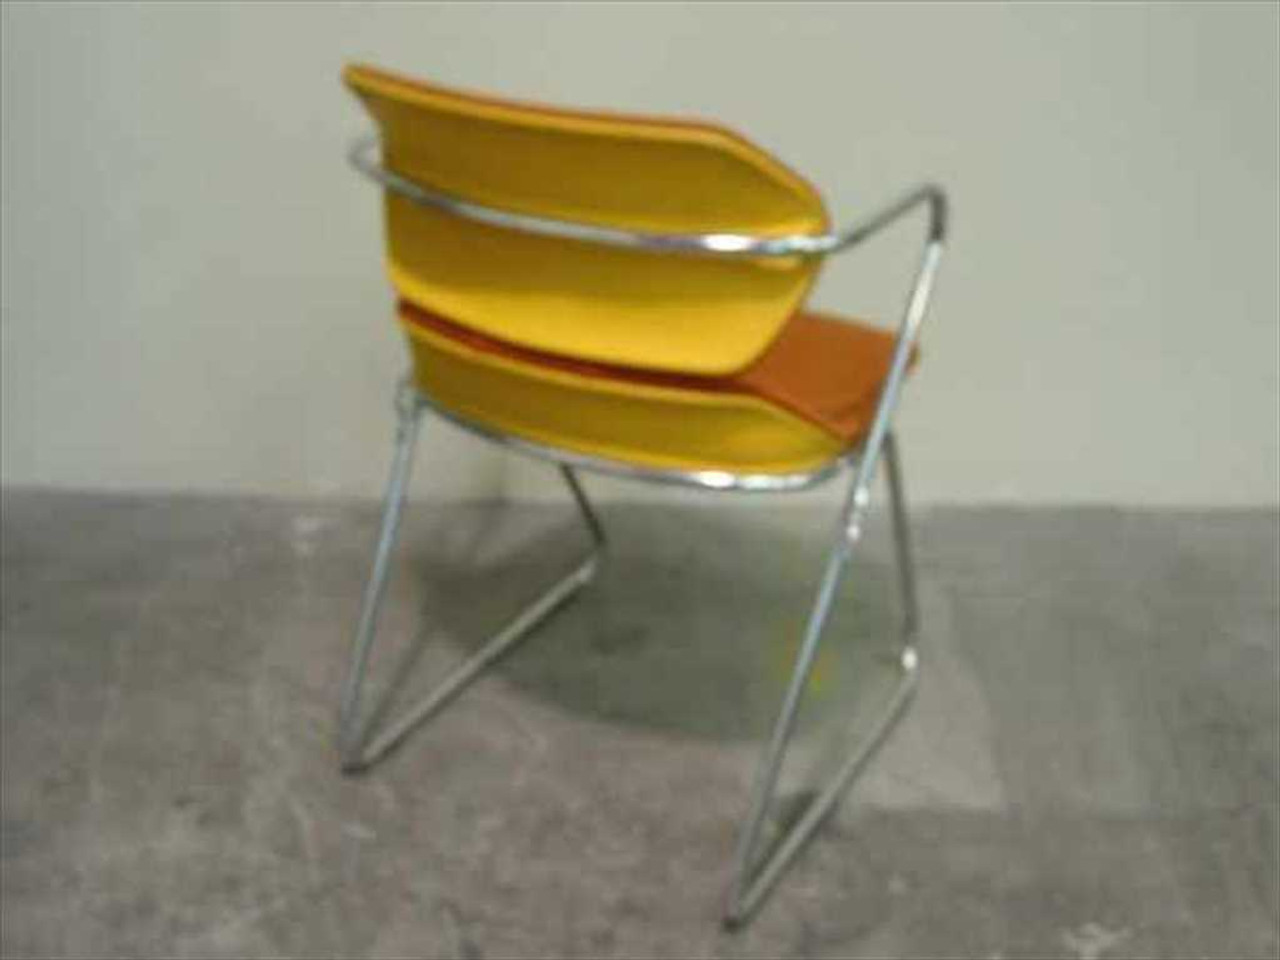 American Seating Acton Stacker Chairs Lot Of 5 Chairs